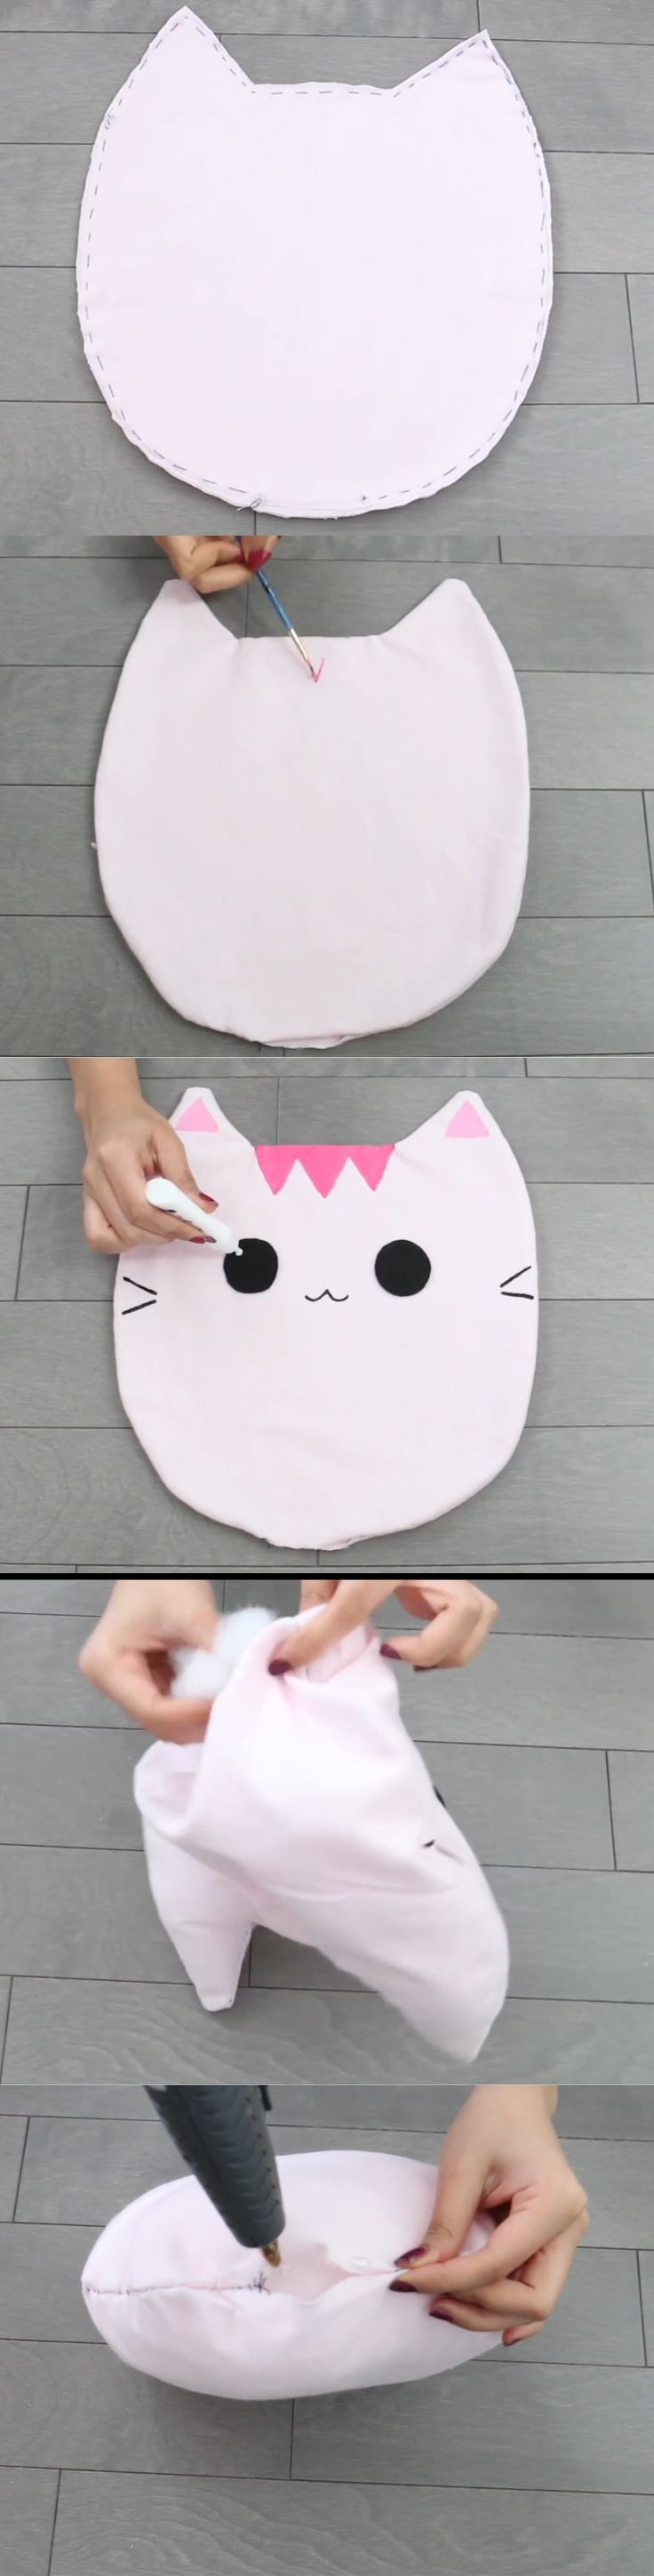 Nim C's Melissa/Oscar Cat pillow diy tutorial part 2. So cute!!!!